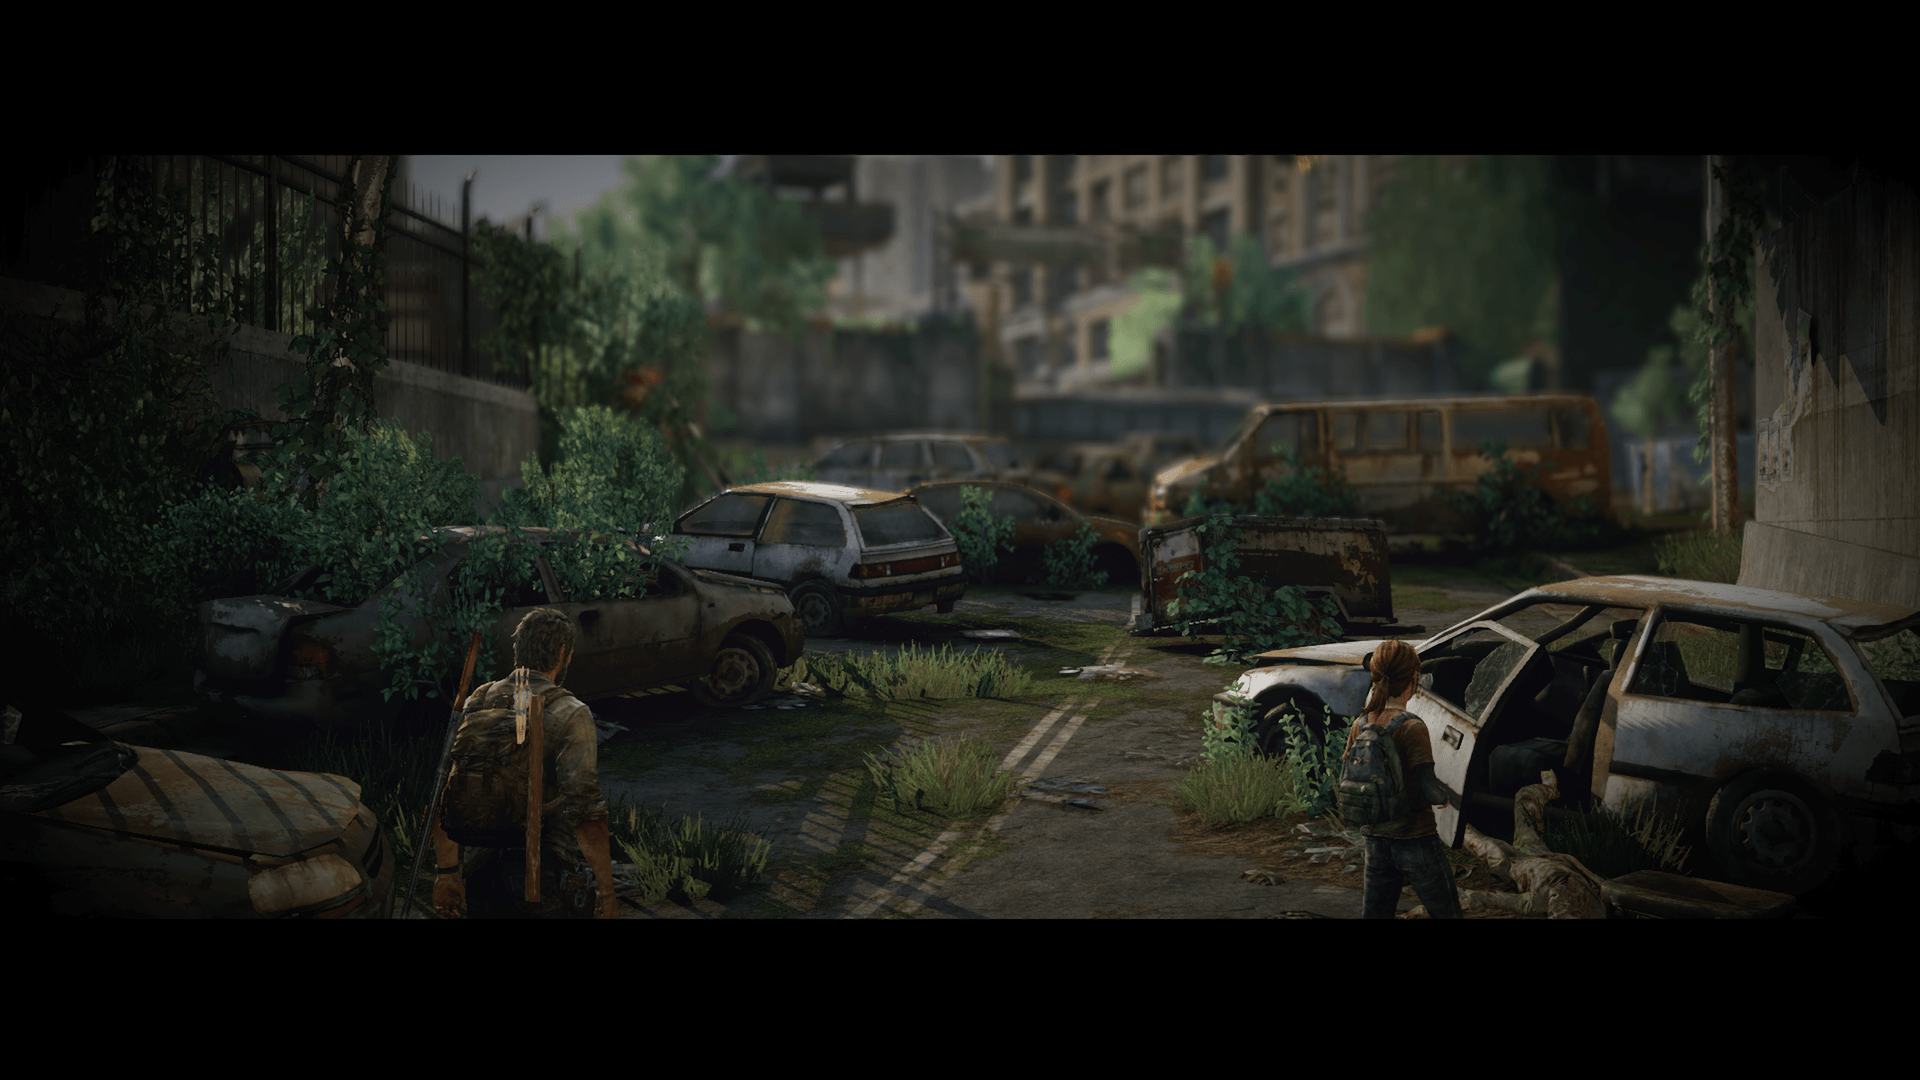 The Last of Us - Una bonita instantánea de la decadencia